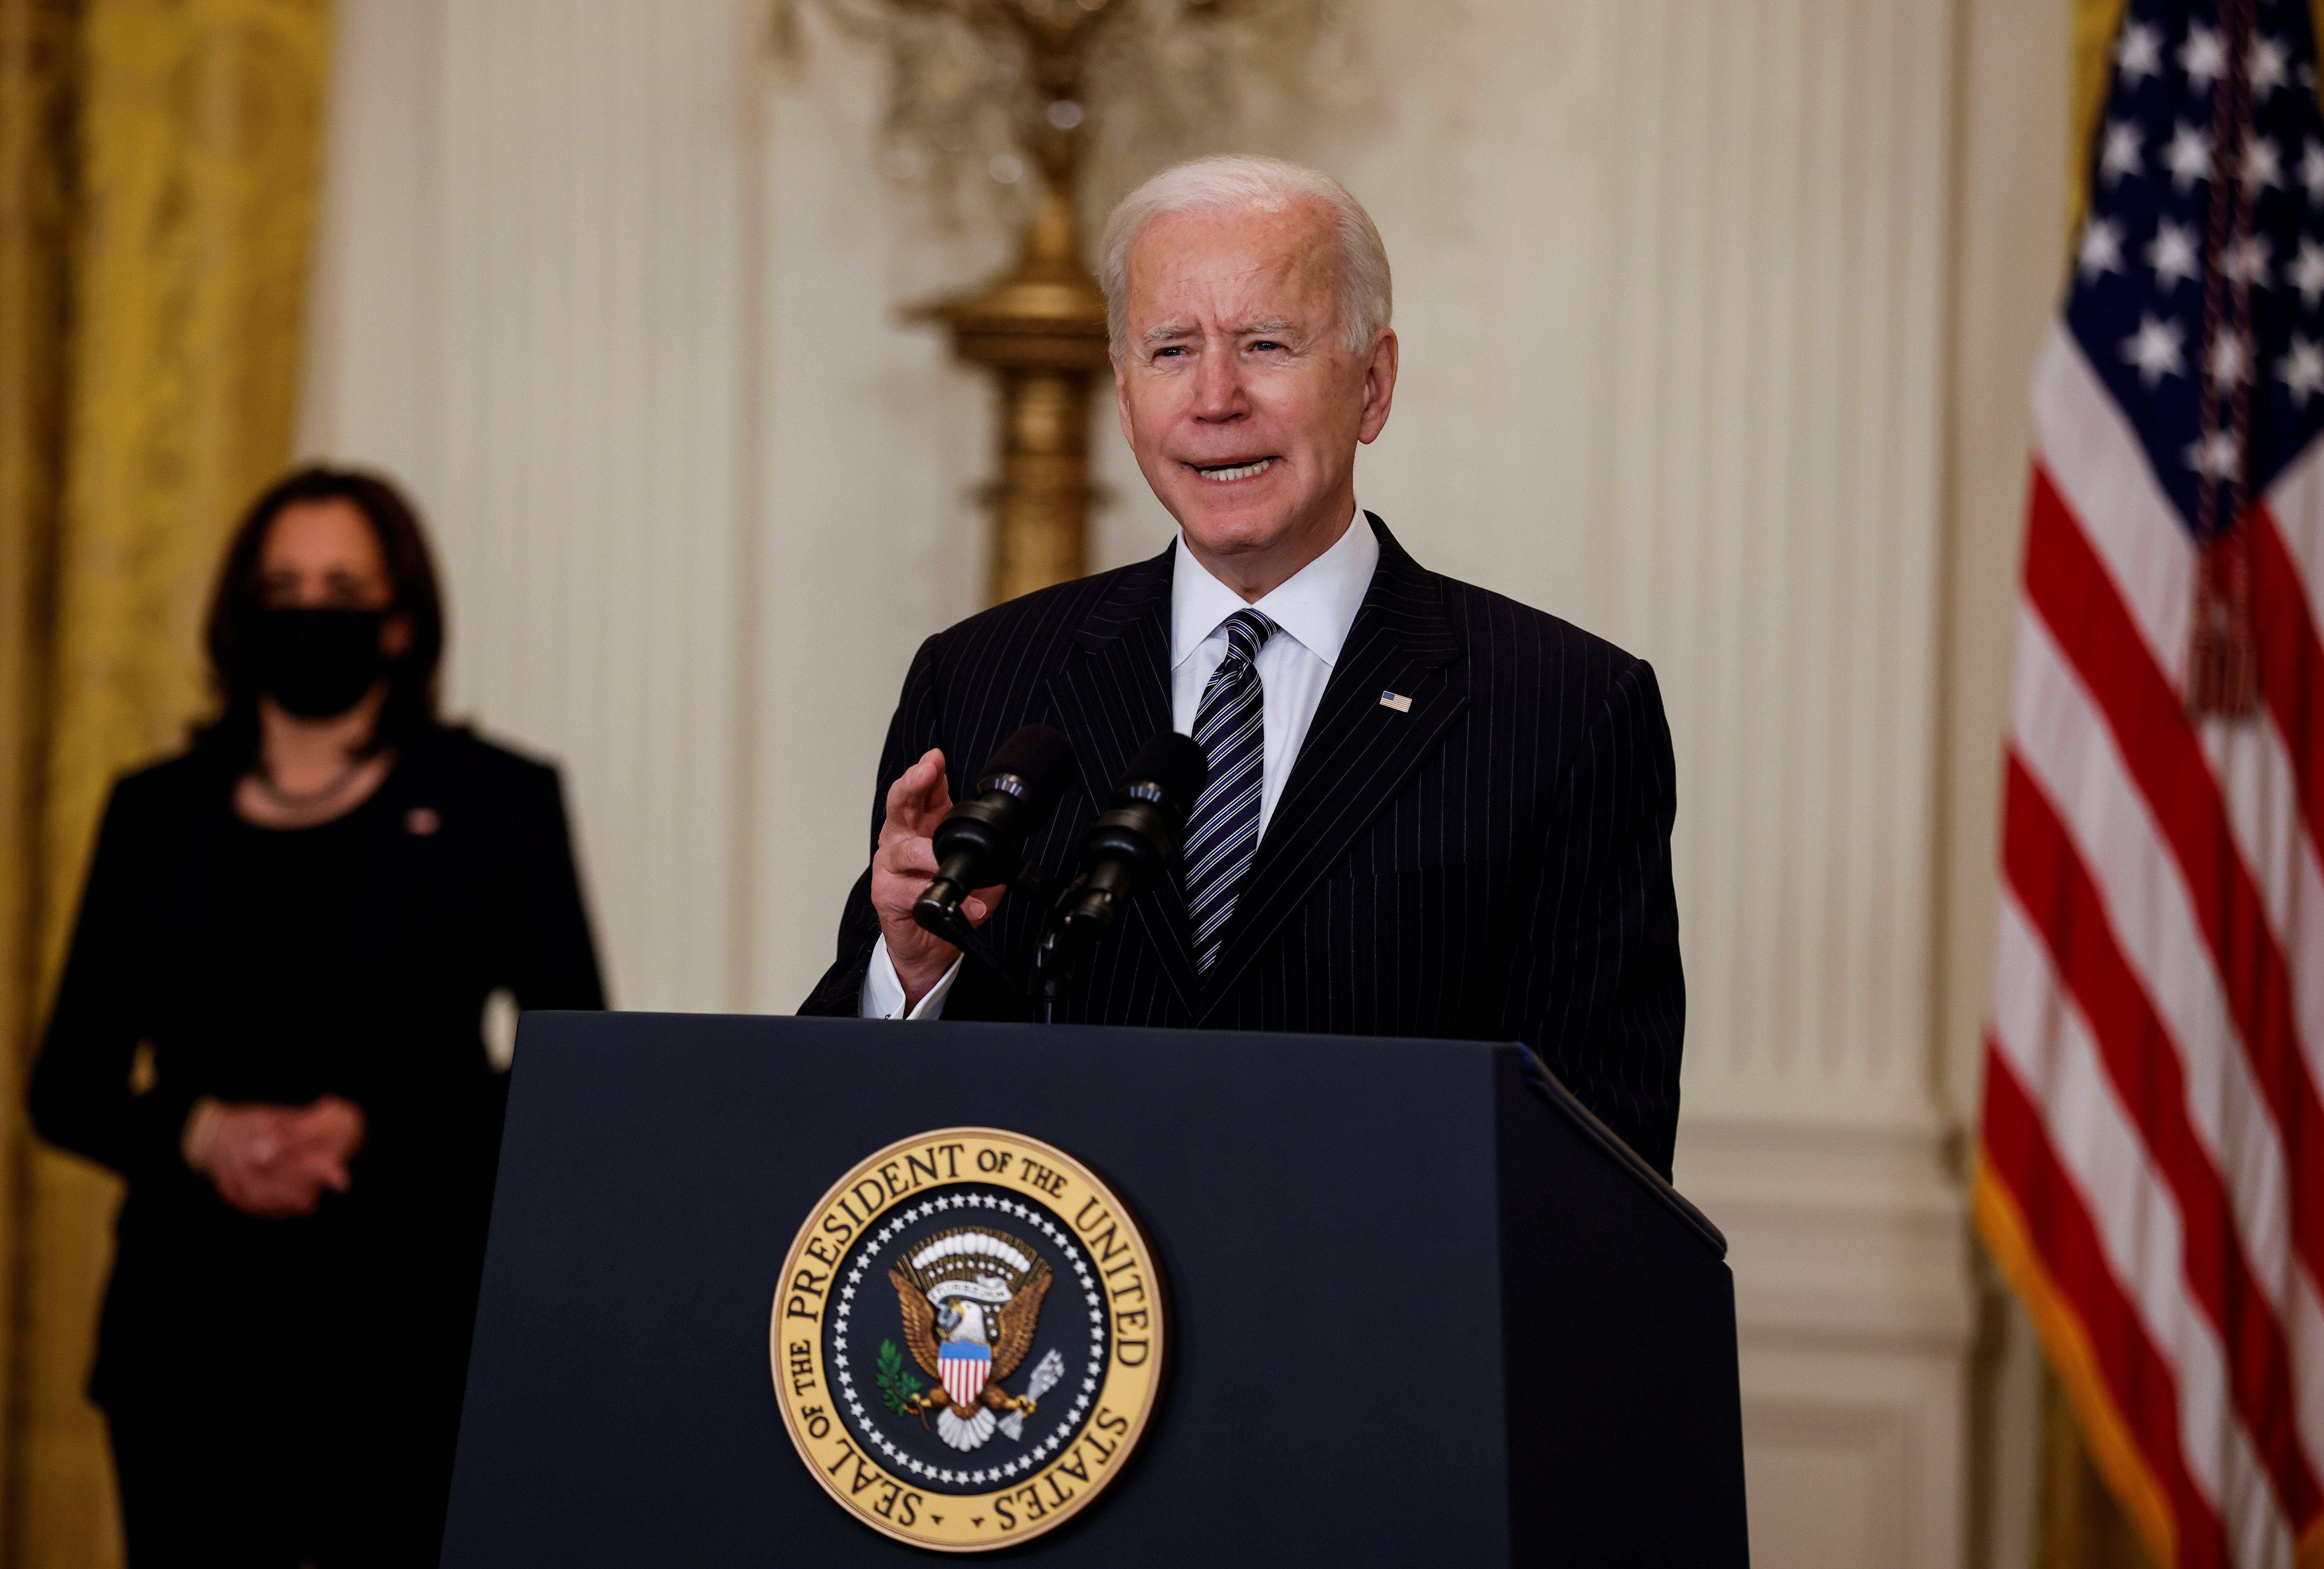 U.S. President Joe Biden speaks about the state of vaccinations as Vice President Kamala Harris listens during a coronavirus disease (COVID-19) response event in the East Room at the White House in Washington, U.S., March 18, 2021. REUTERS/Carlos Barria